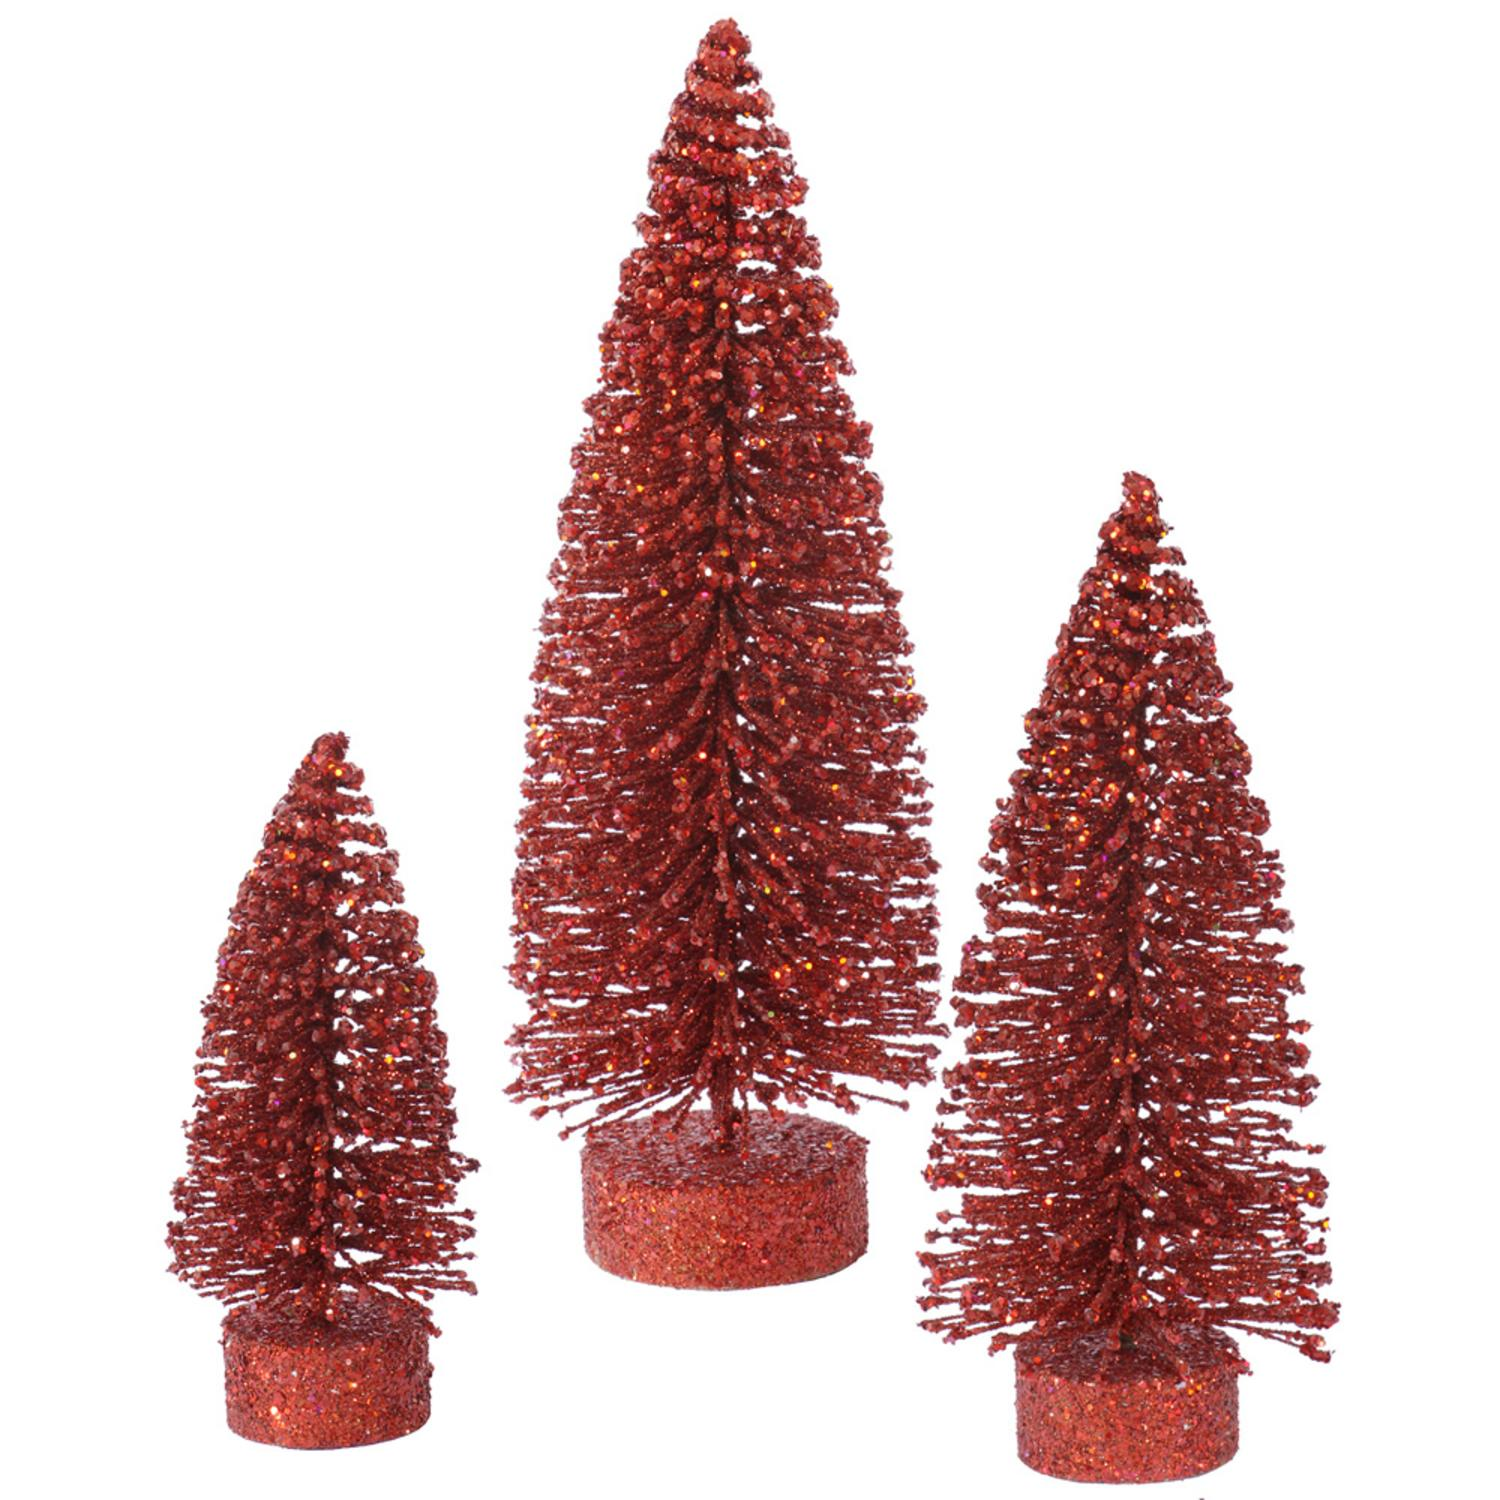 Set of 3 Red Glittered Bottle Brush Oval Artificial Christmas Tree Decorations